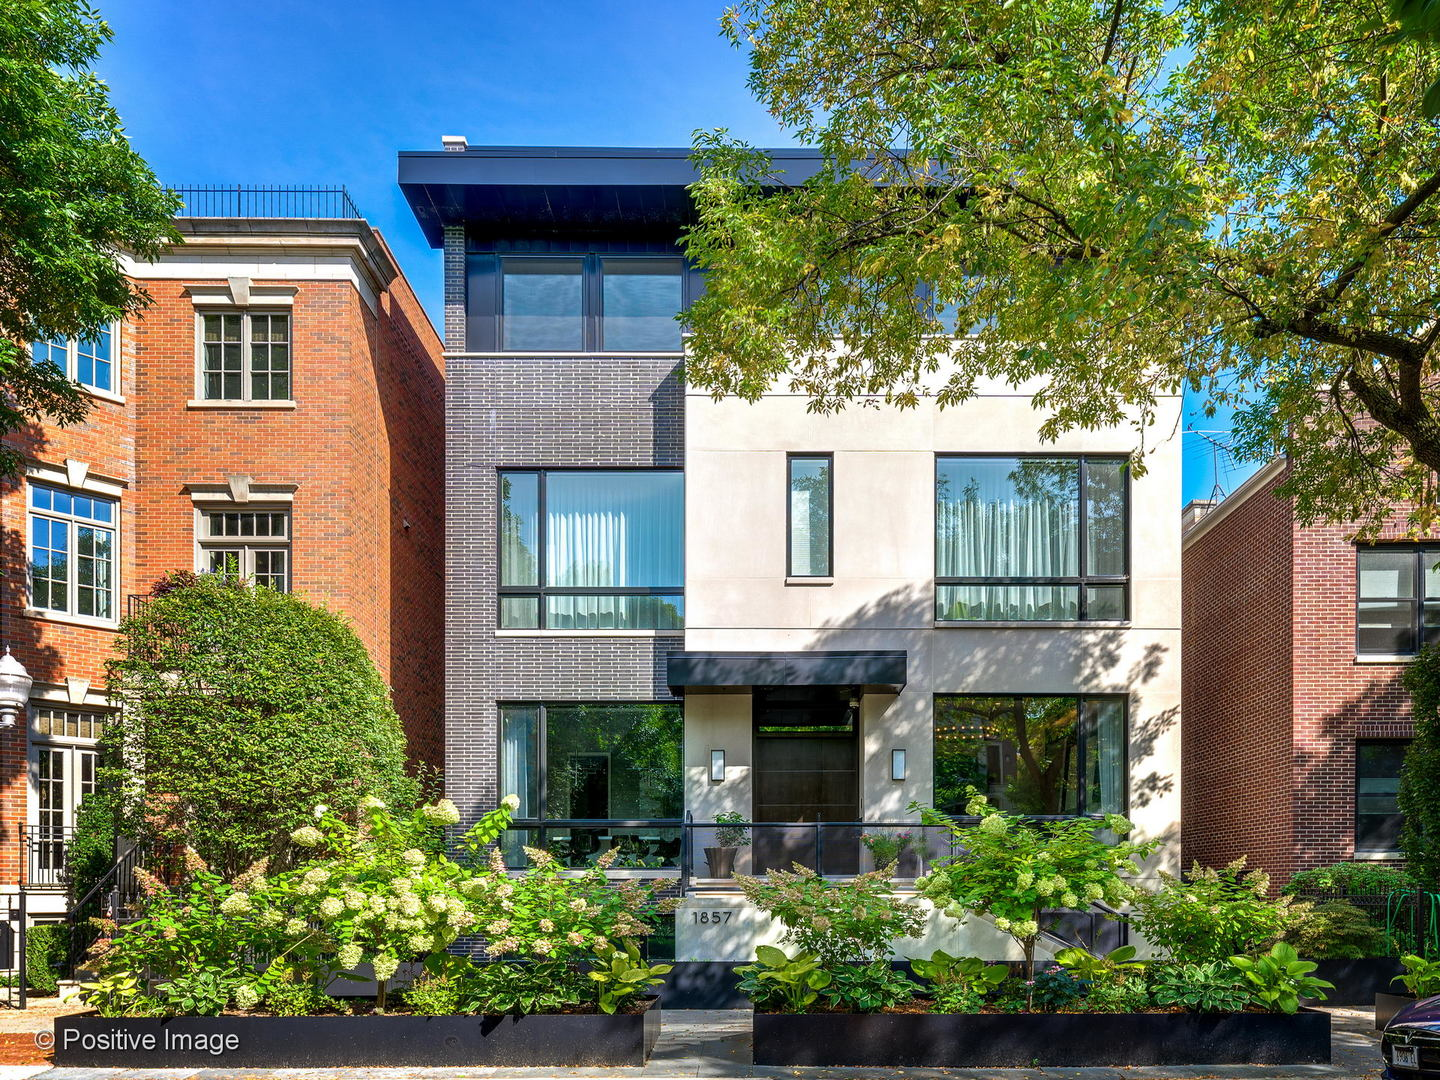 Photo of 1857 N Orchard Street, Chicago, IL 60614